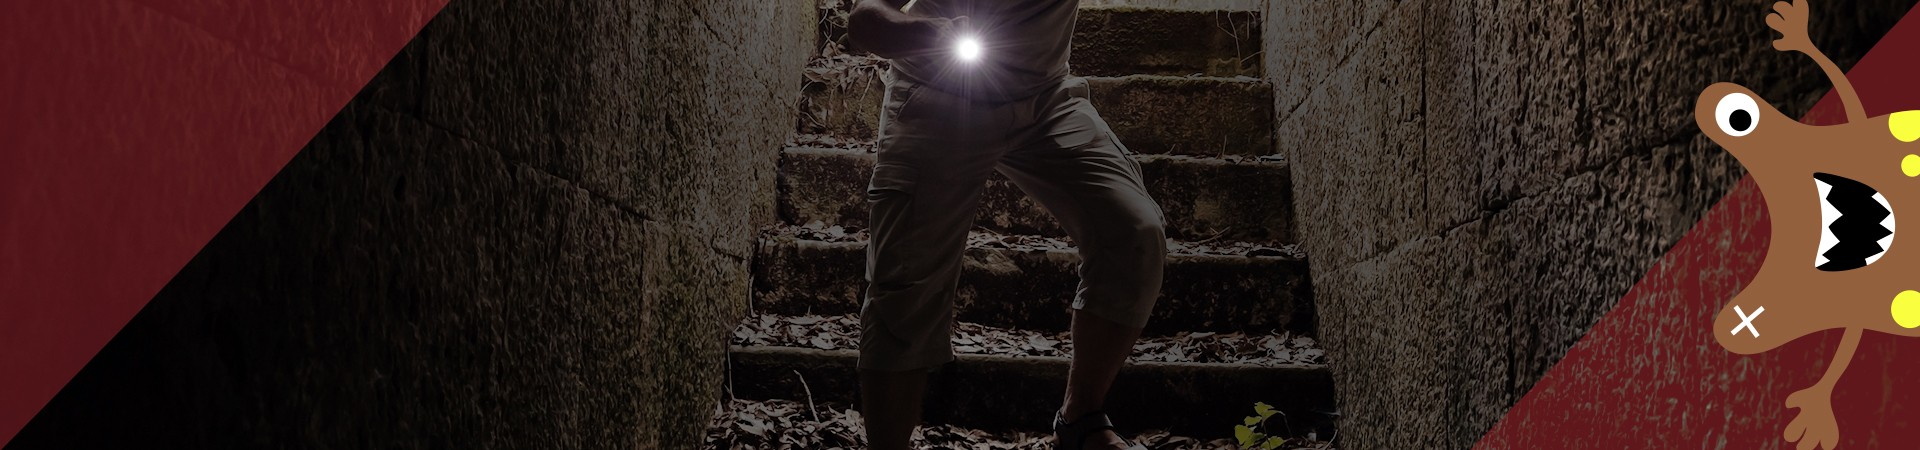 monster peering out corner - man going down stairs down tunnel in the dark with flashlight